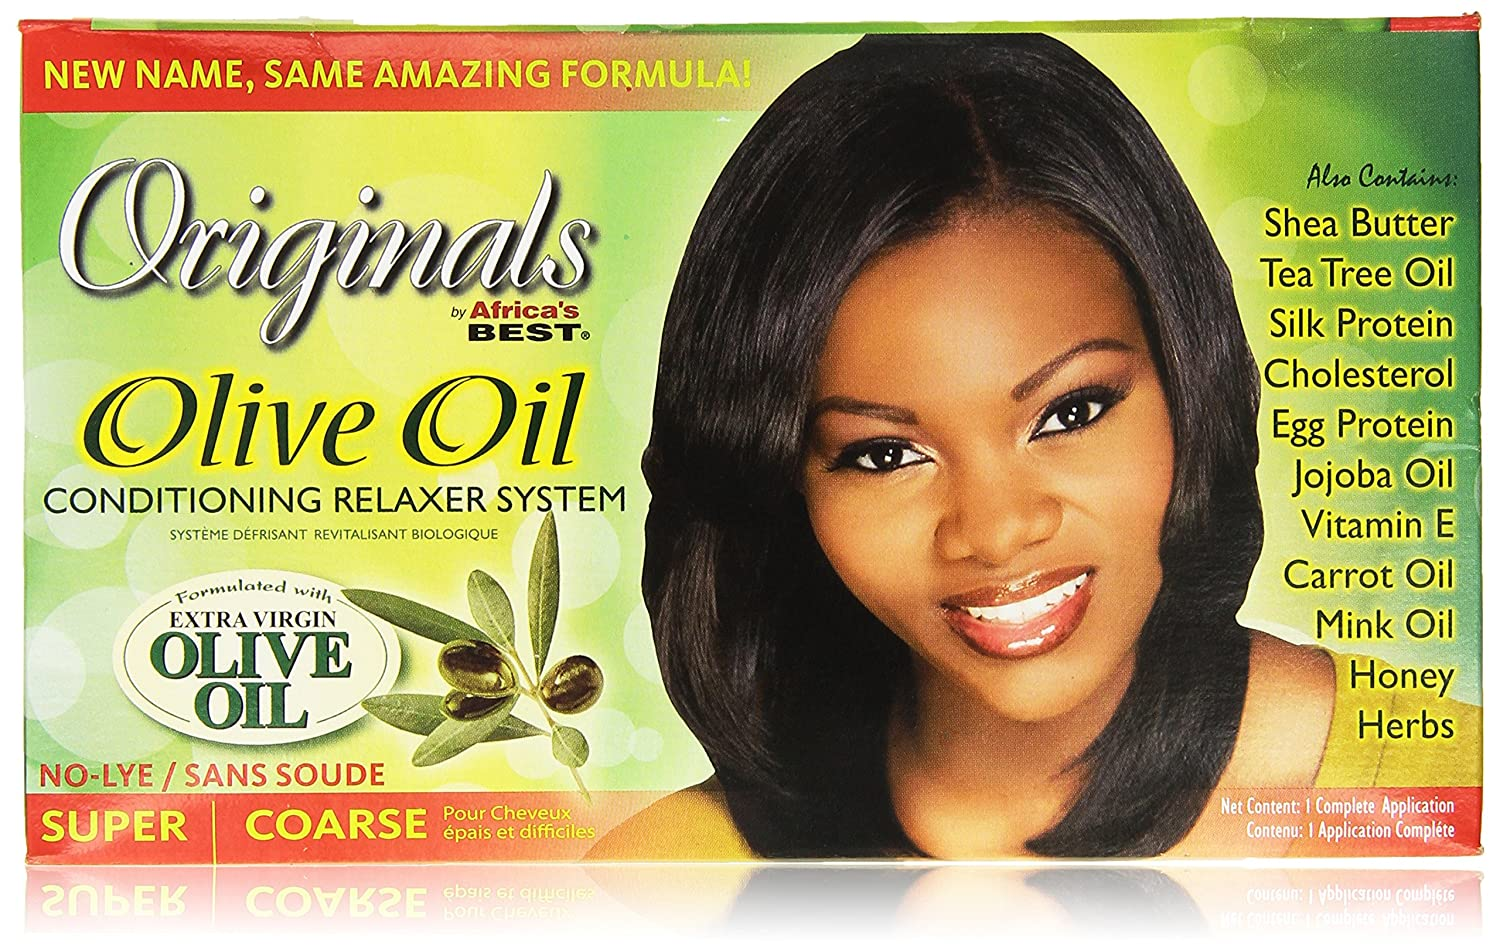 Amazon.com: Africas Best Organics Organic Conditioning Relaxer System, for Coarse Resistant Hair, No-Lye, Super: Beauty